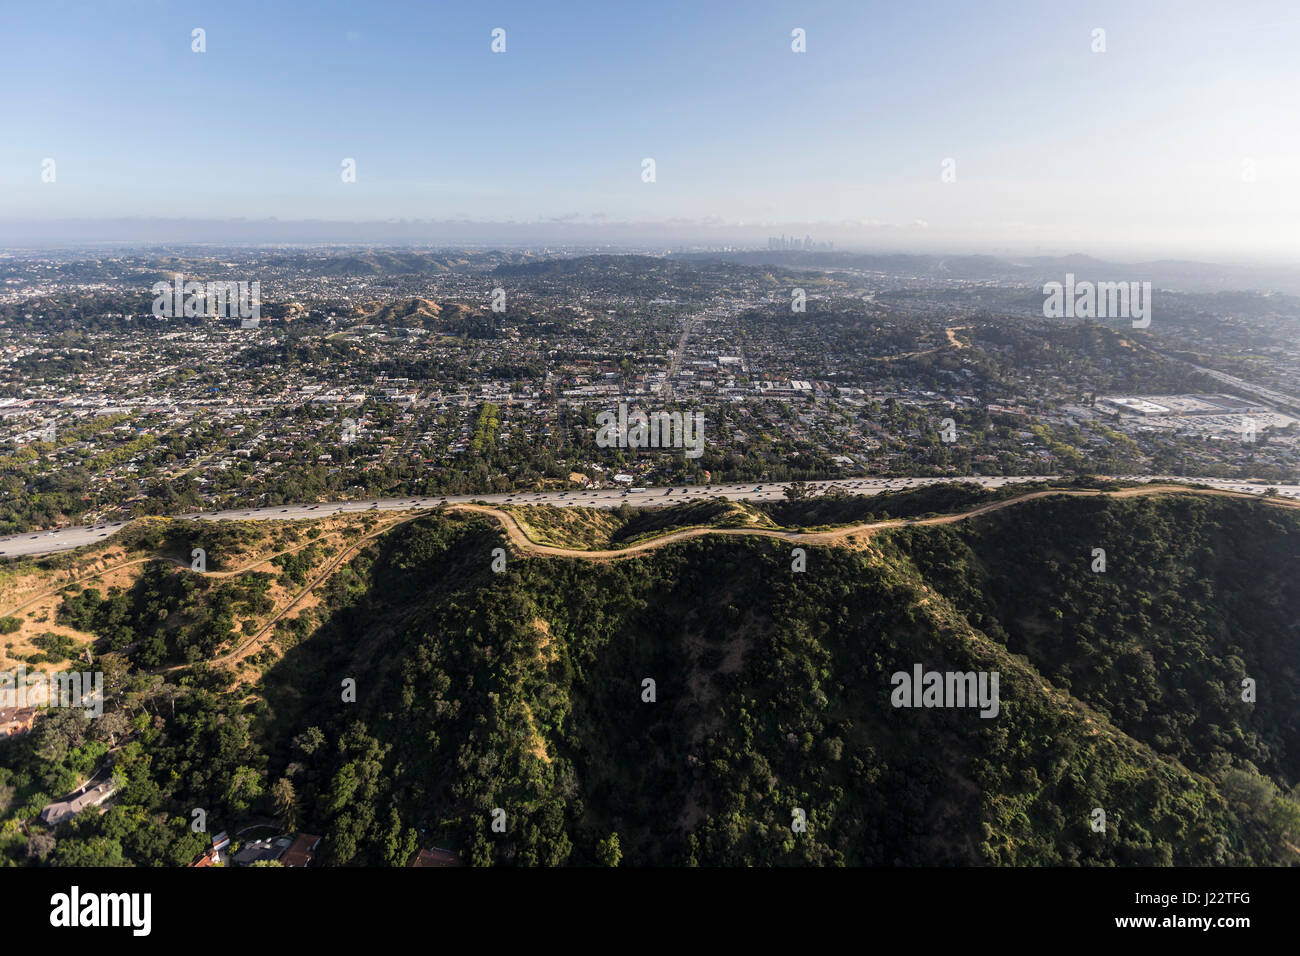 Aerial view of Eagle Rock in northeast Los Angeles, California. - Stock Image